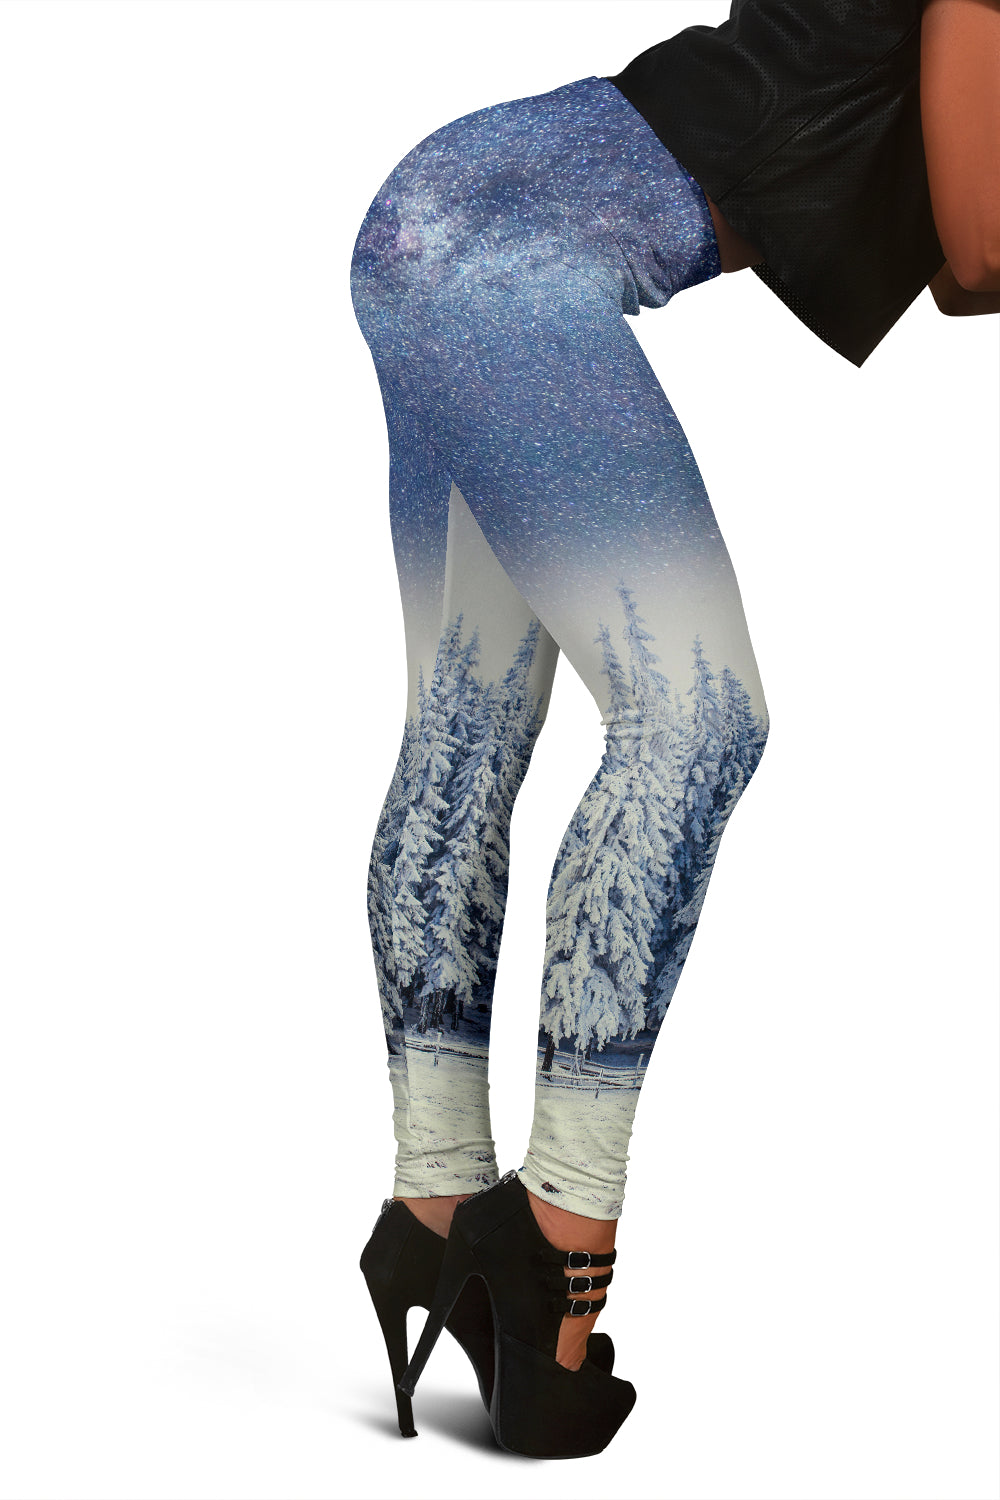 Women's Christmas Leggings With Snow Covered Mountains And Trees